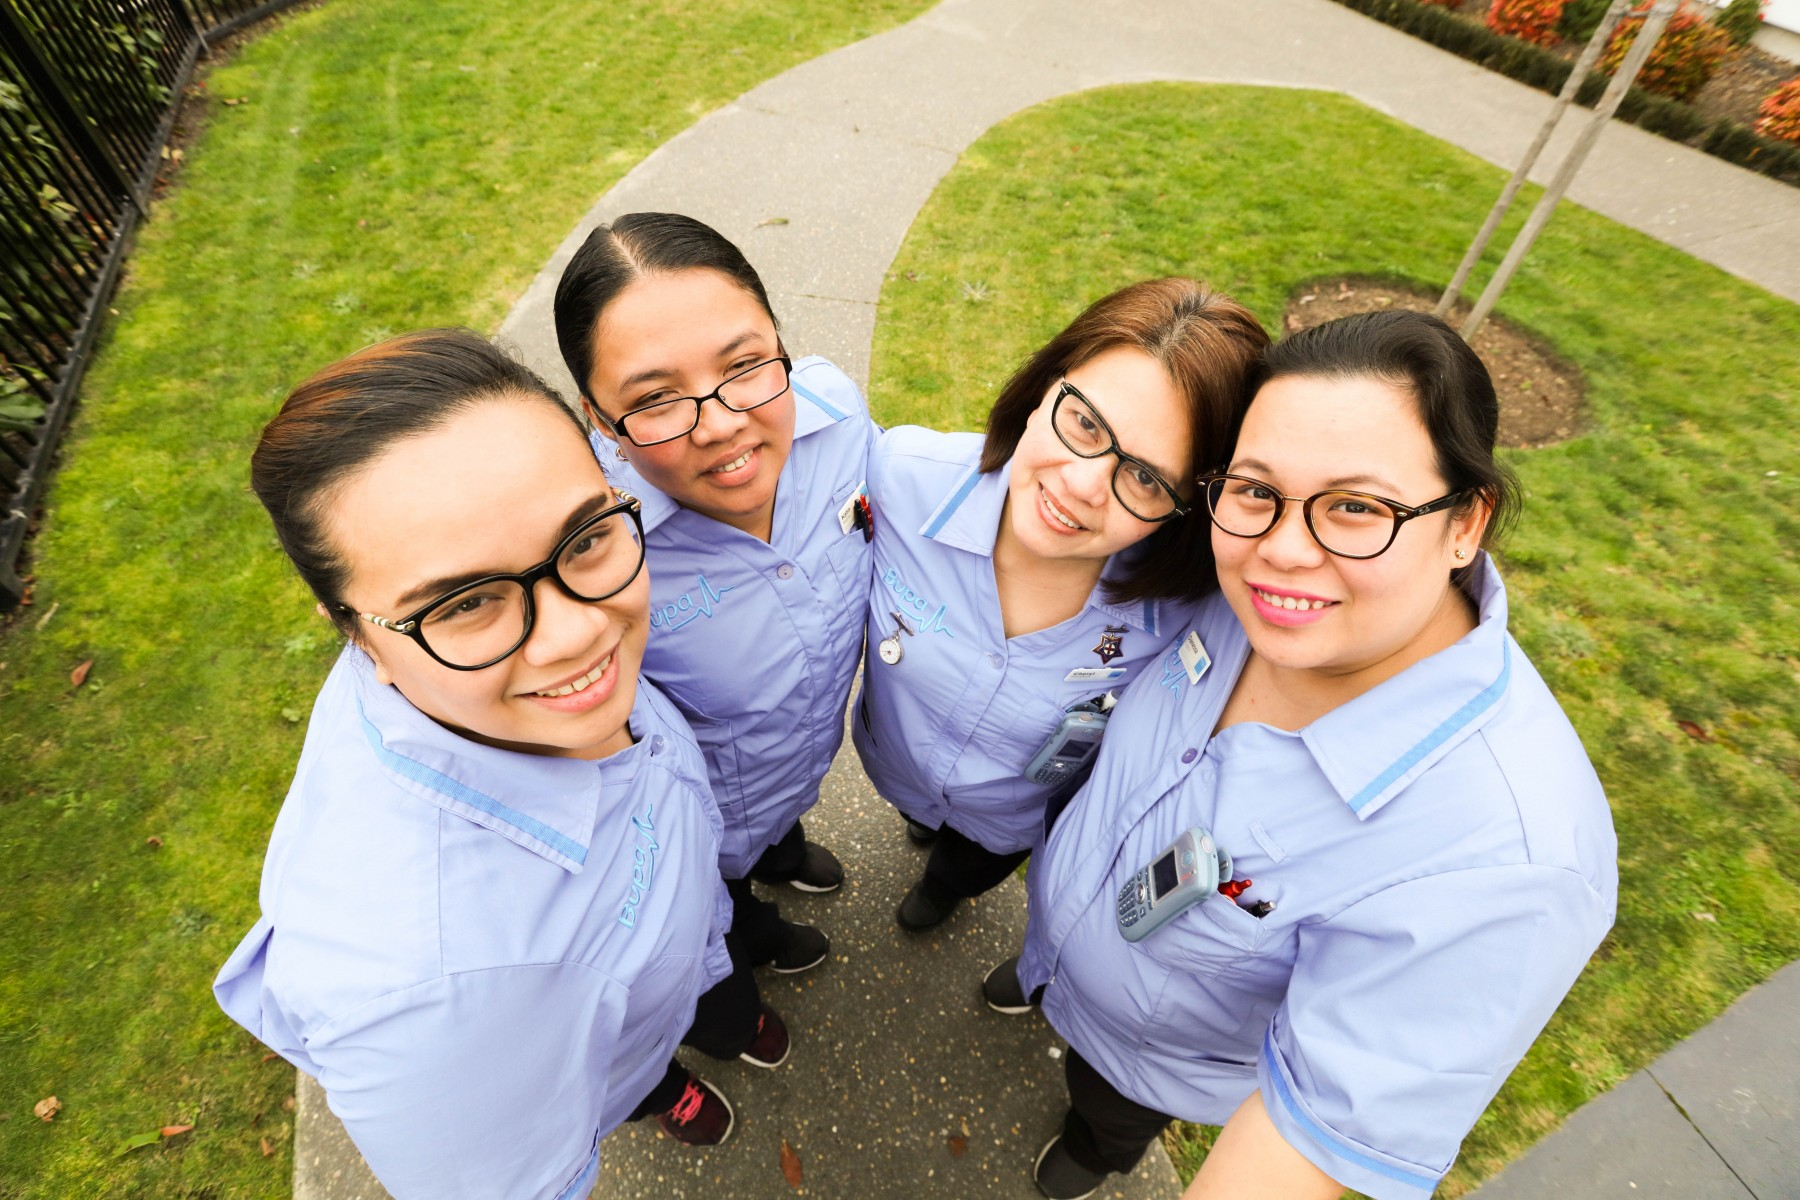 Photo - Left to right - Charisse Conmigo Bupa registered nurse, Daryl Garpia Bupa registered nurse,  Danessa Cuyno - Bupa unit coordinator, Cheryl Ricafort - Bupa unit coordinator. All of these Bupa people have completed the PDRP